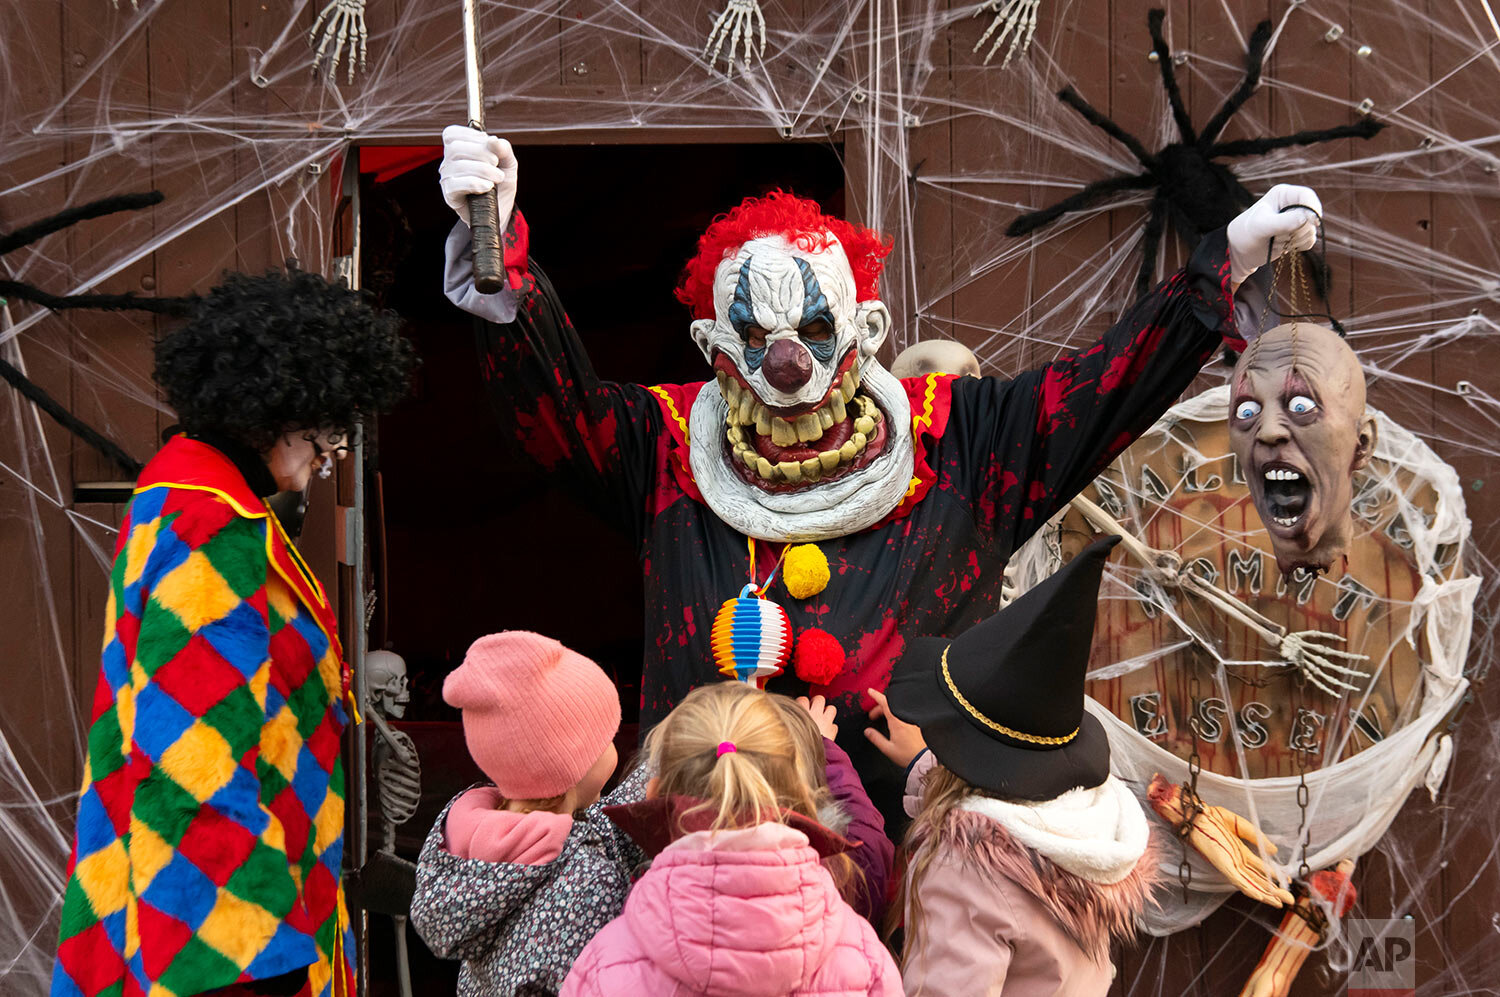 Mario Leicht, center, and his wife, wear costumes as horror clowns at their house decorated for Halloween in Walschleben near Erfurt, Germany, Thursday, Oct. 31, 2019. The whole house facade and the front garden are decorated with dolls, spiders, skulls and inside with mini-ghosts, vampires, skeletons, zombies and almost 50 spiders. He decorates the house for Halloween every year since 2011. (AP Photo/Jens Meyer)